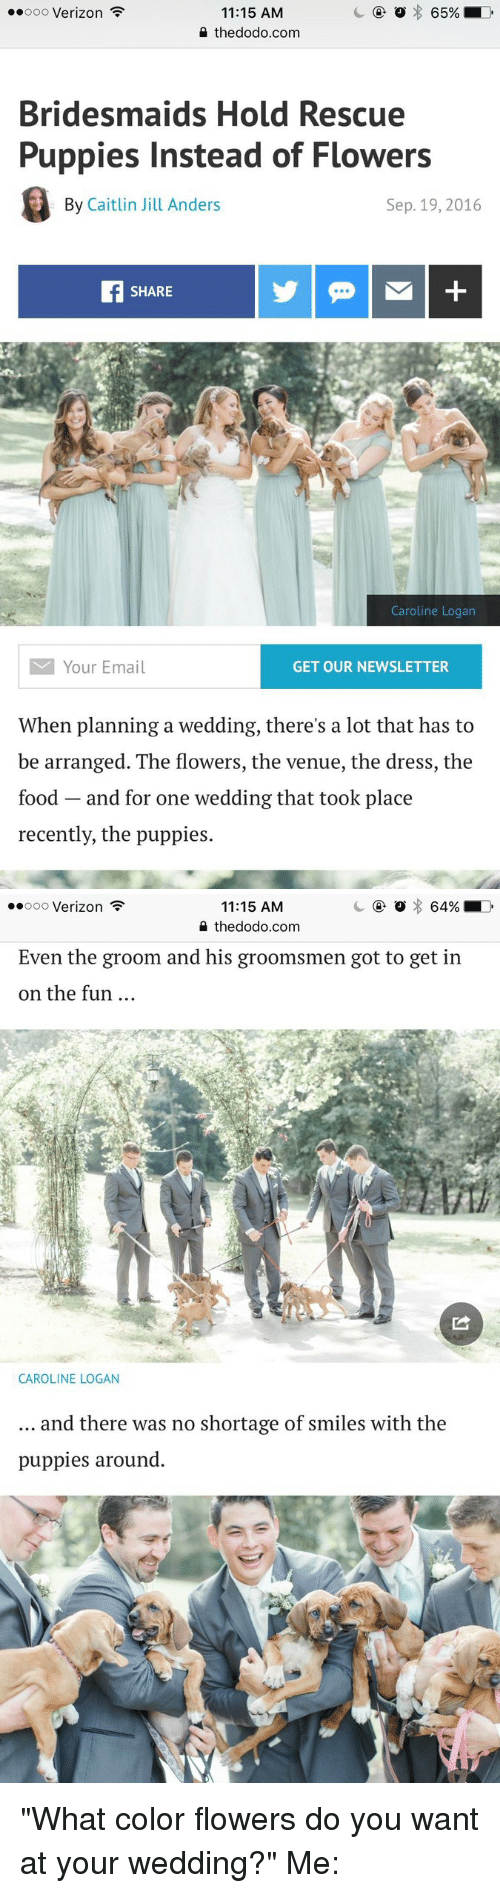 """Groomsmen: o 65%  LD  ooooo Verizon  11:15 AM  the dodo.com  Bridesmaids Hold Rescue  Puppies Instead of Flowers  By Caitlin Jill Anders  Sep. 19, 2016  SHARE  Caroline Logan  M Your Email  GET OUR NEWSLETTER  When planning a wedding, there's a lot that has to  be arranged. The flowers, the venue, the dress, the  food and for one wedding that took place  recently, the puppies.   64% LD  ooooo Verizon  11:15 AM  the dodo.com  Even the groom and his groomsmen got to get in  on the fun  CAROLINE LOGAN  and there was no shortage of smiles with the  puppies around """"What color flowers do you want at your wedding?"""" Me:"""